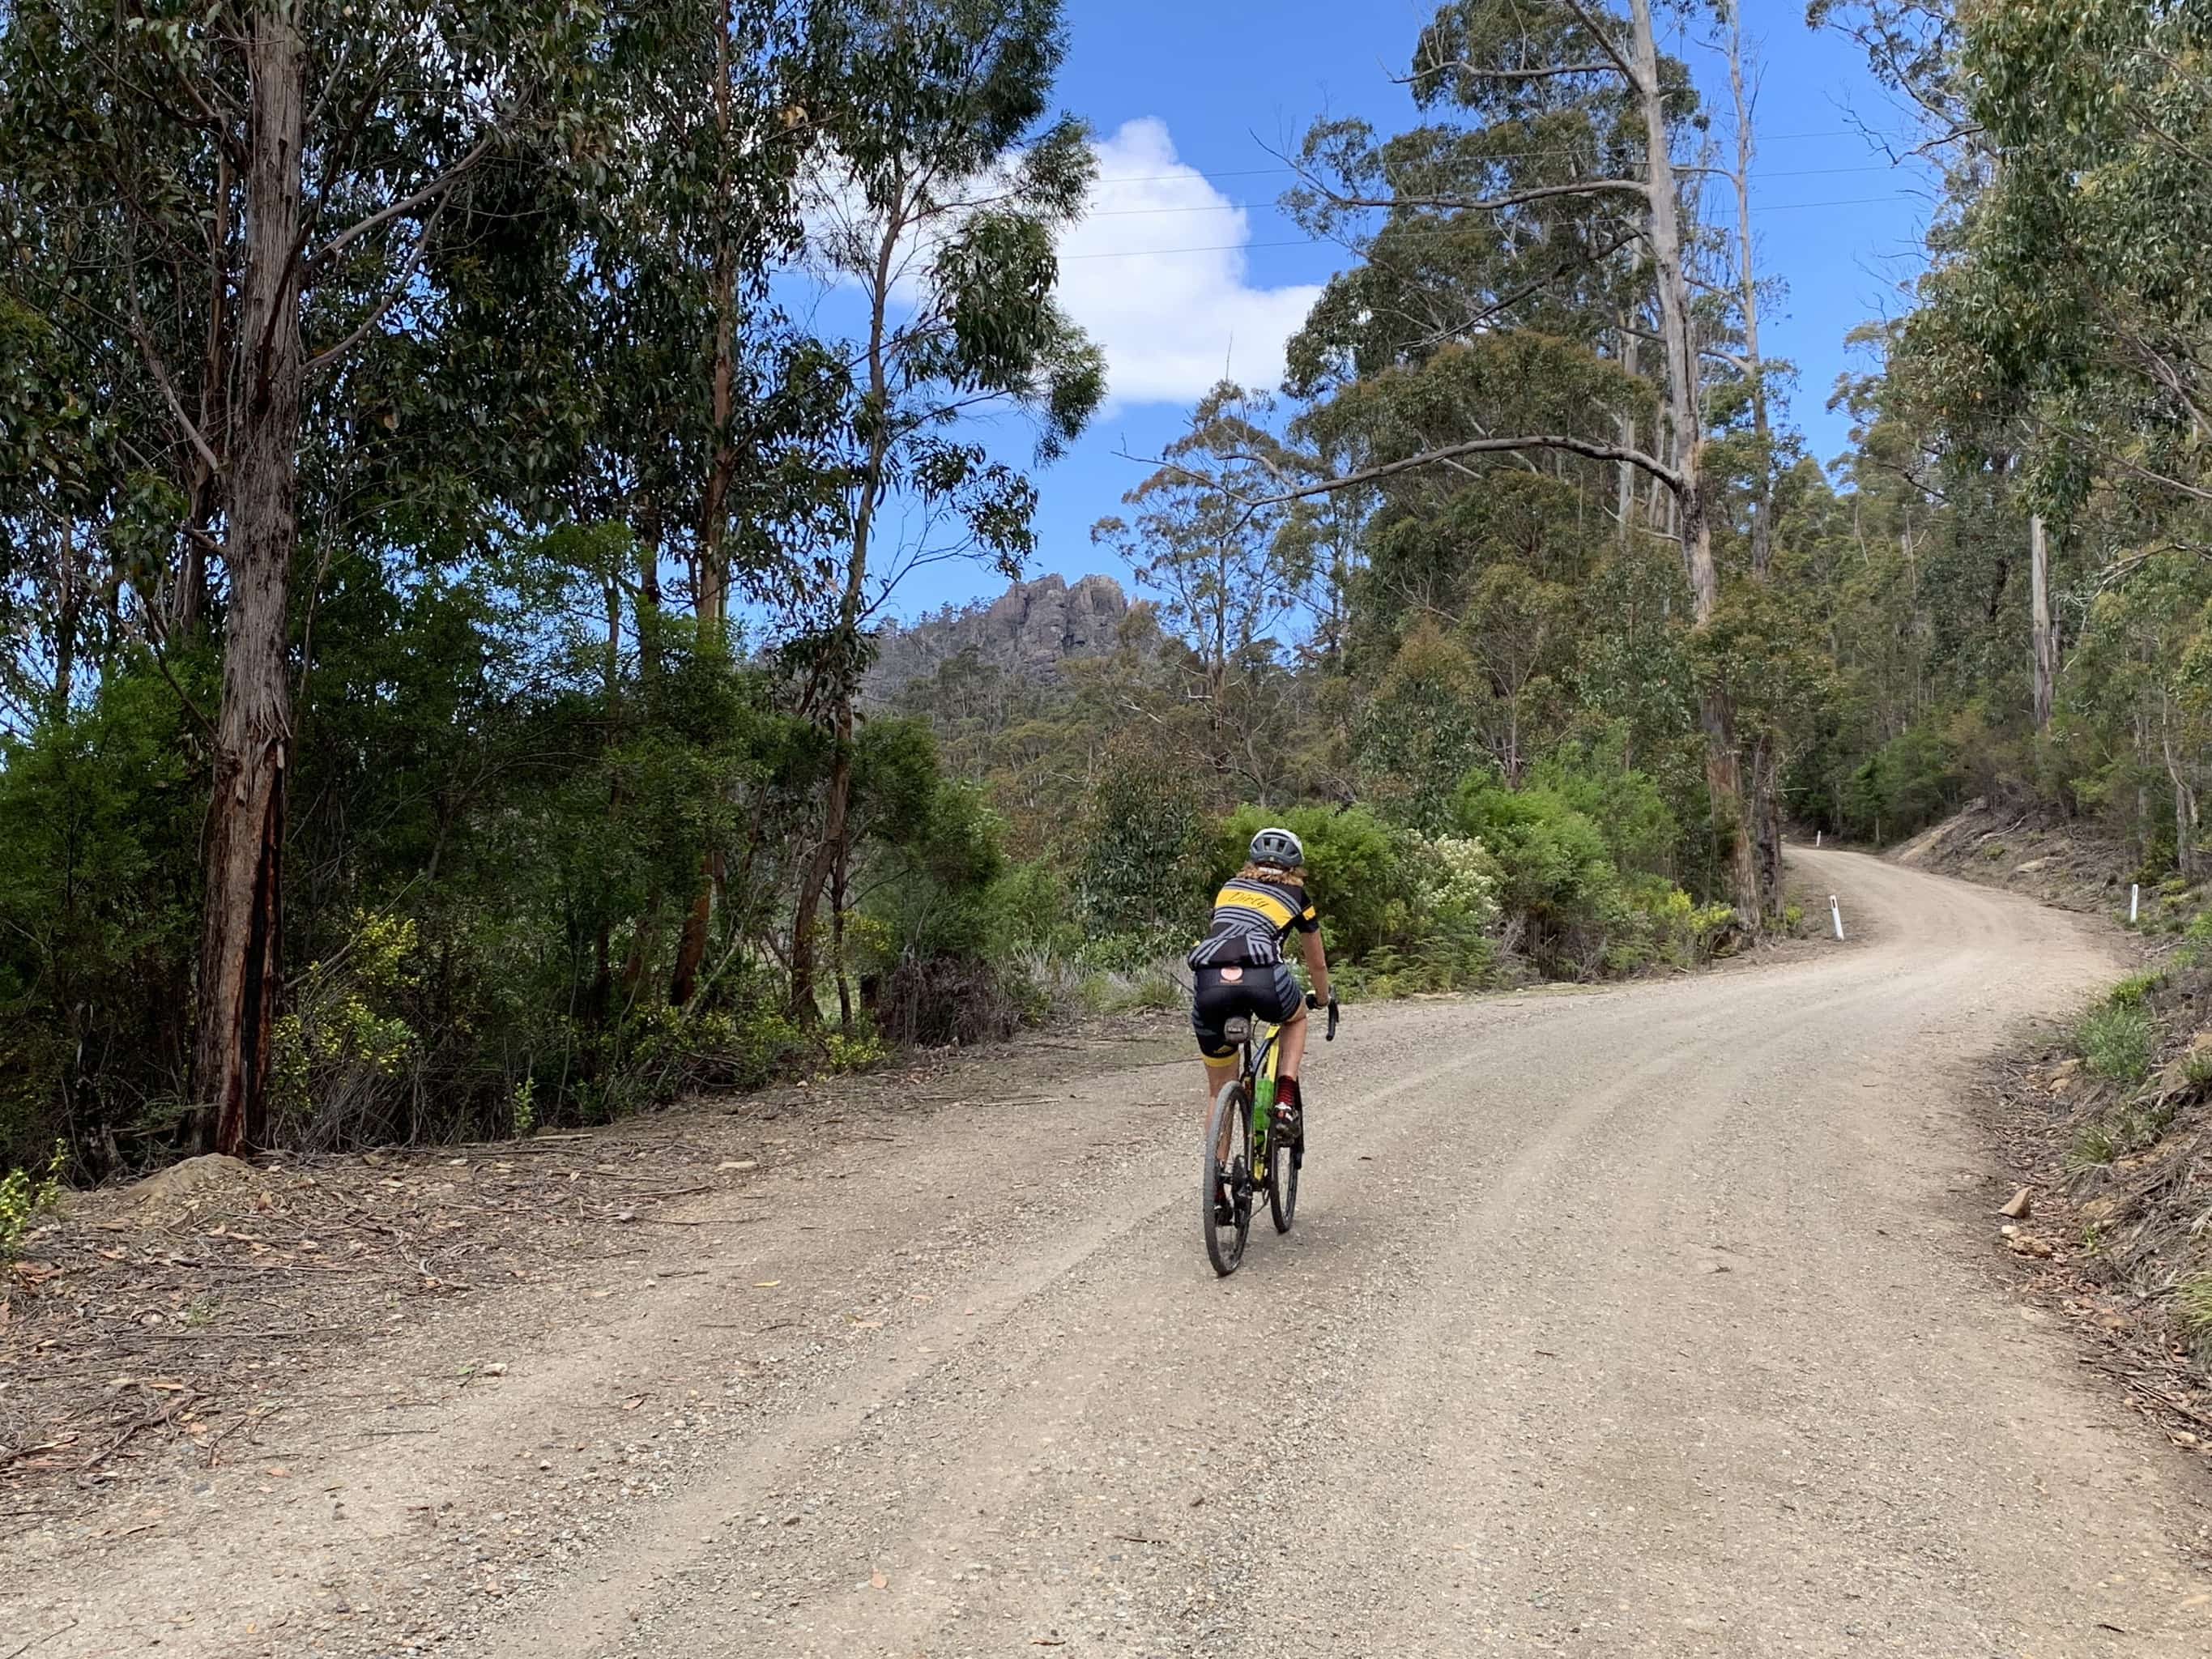 Bike rider on gravel road that winds right and then left in sweeping turns.